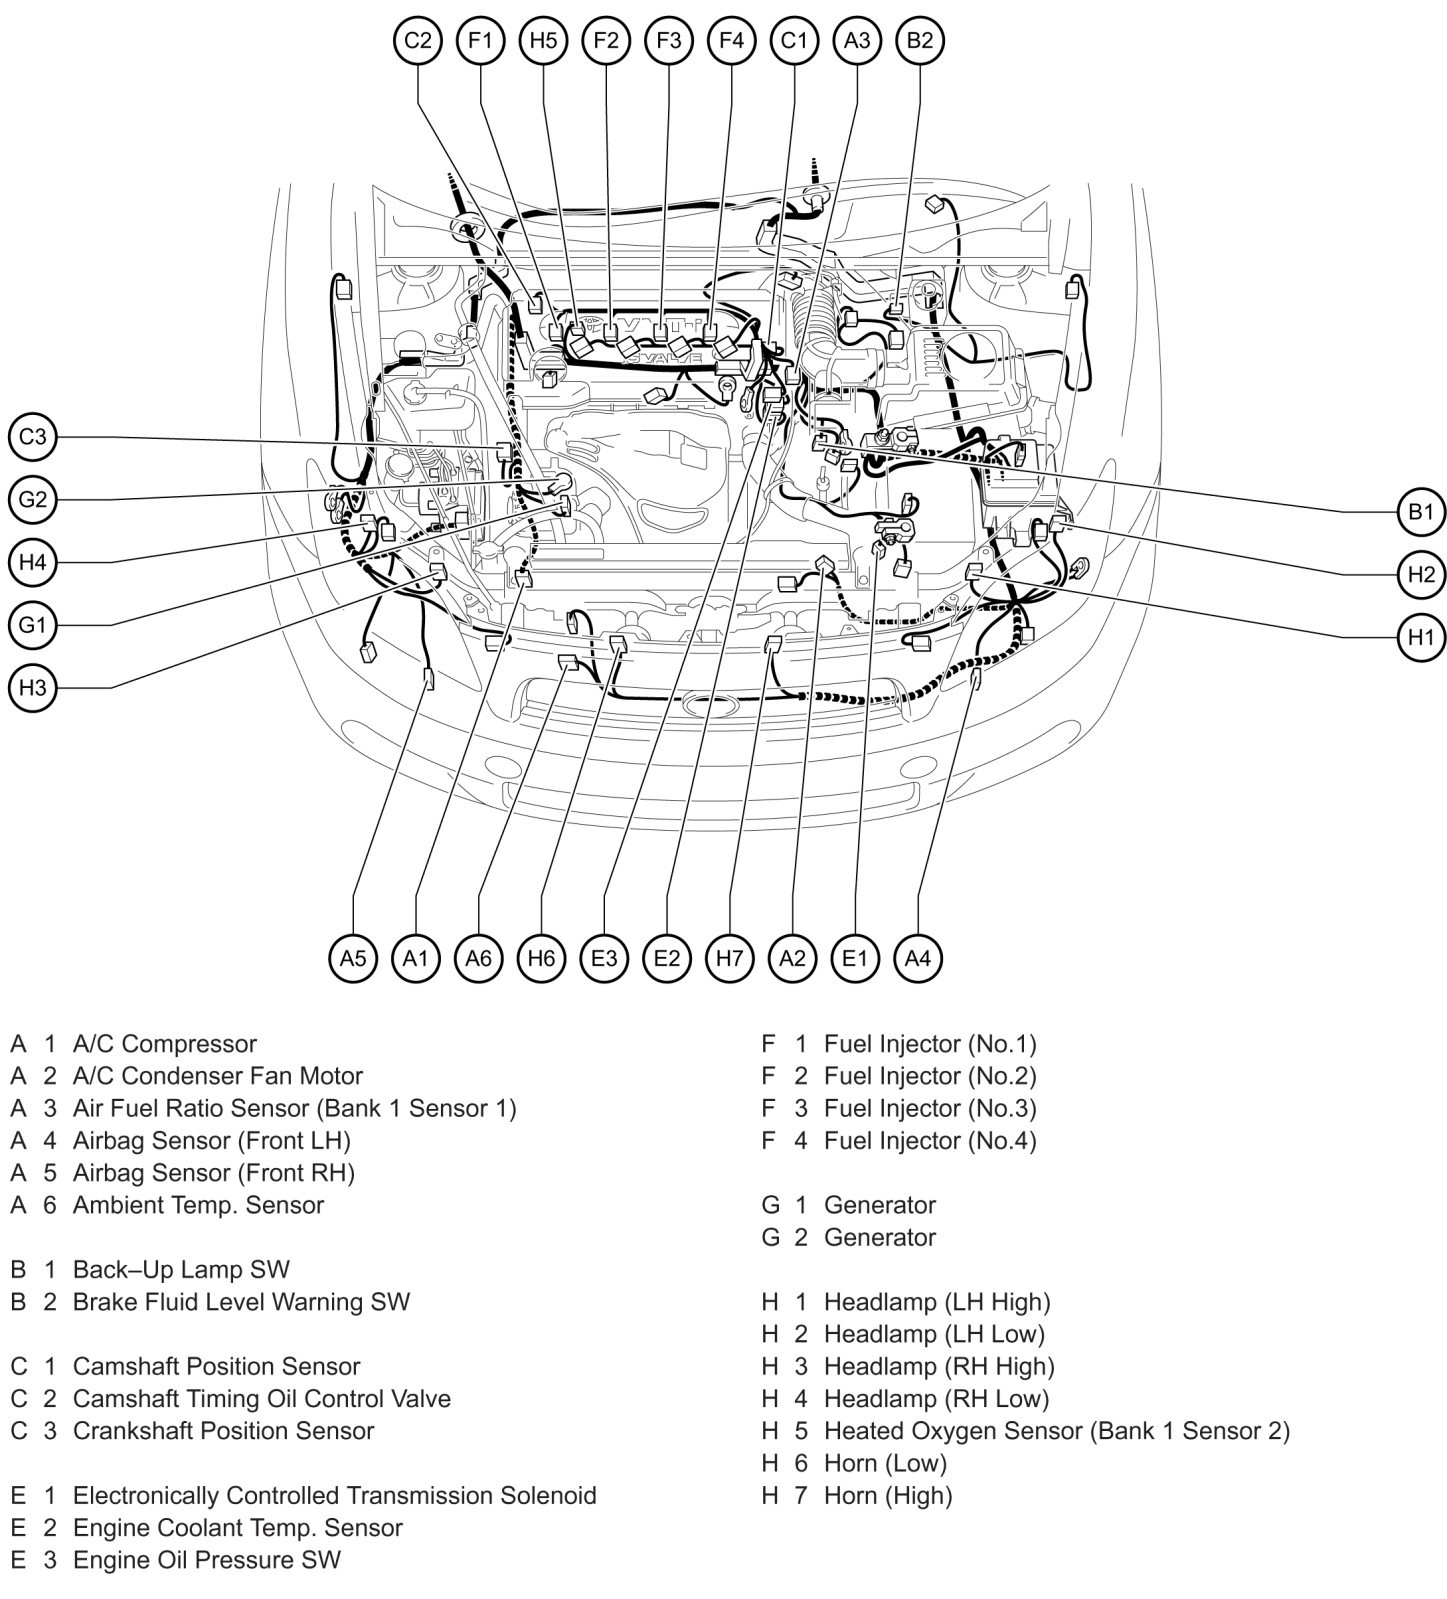 2006 Scion Tc Engine Diagram Scion Tc Engine Diagram Schematic Wiring  Diagram • Of 2006 Scion